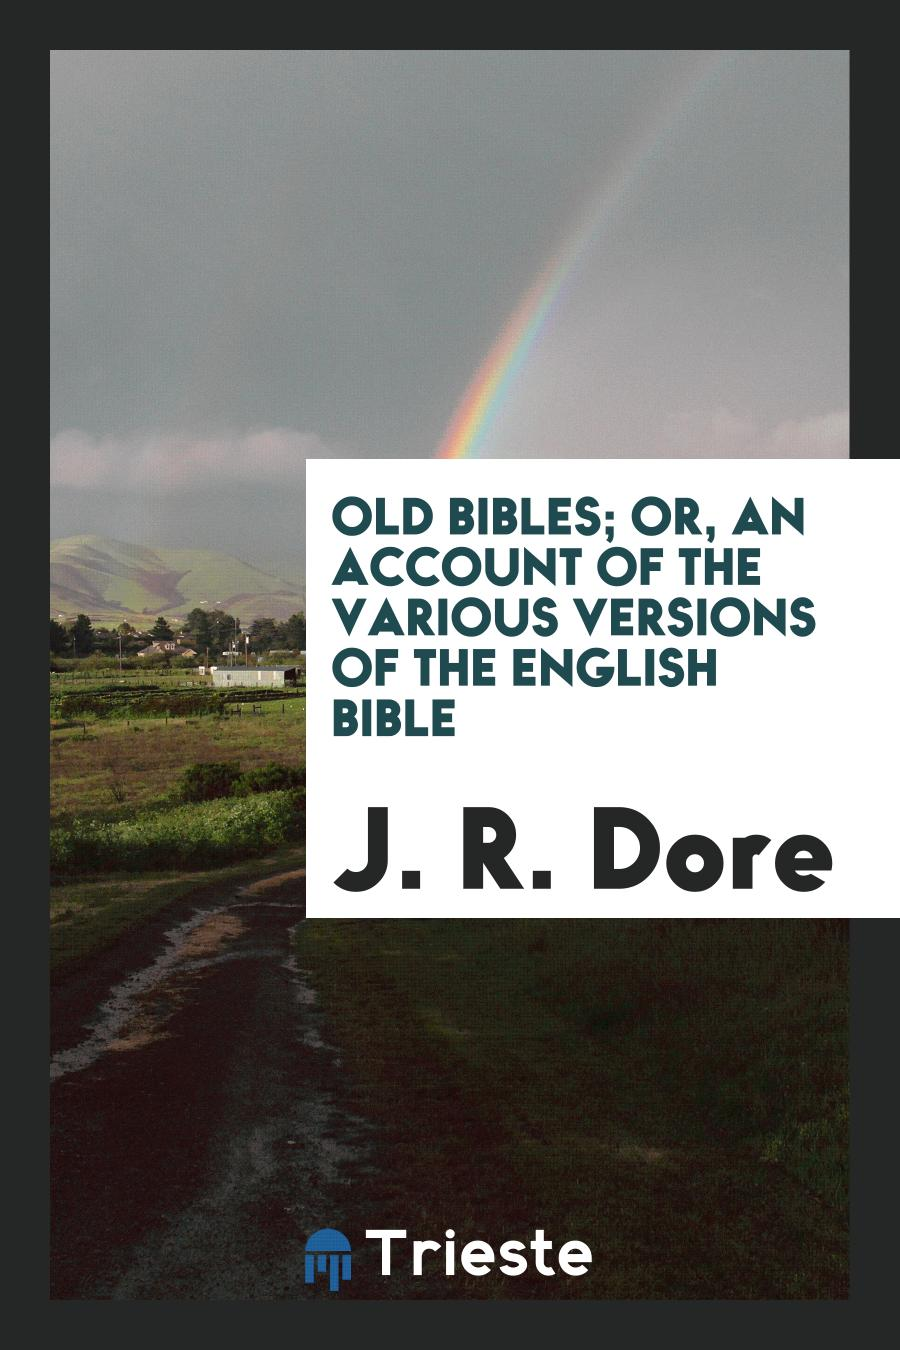 Old Bibles; Or, an Account of the Various Versions of the English Bible